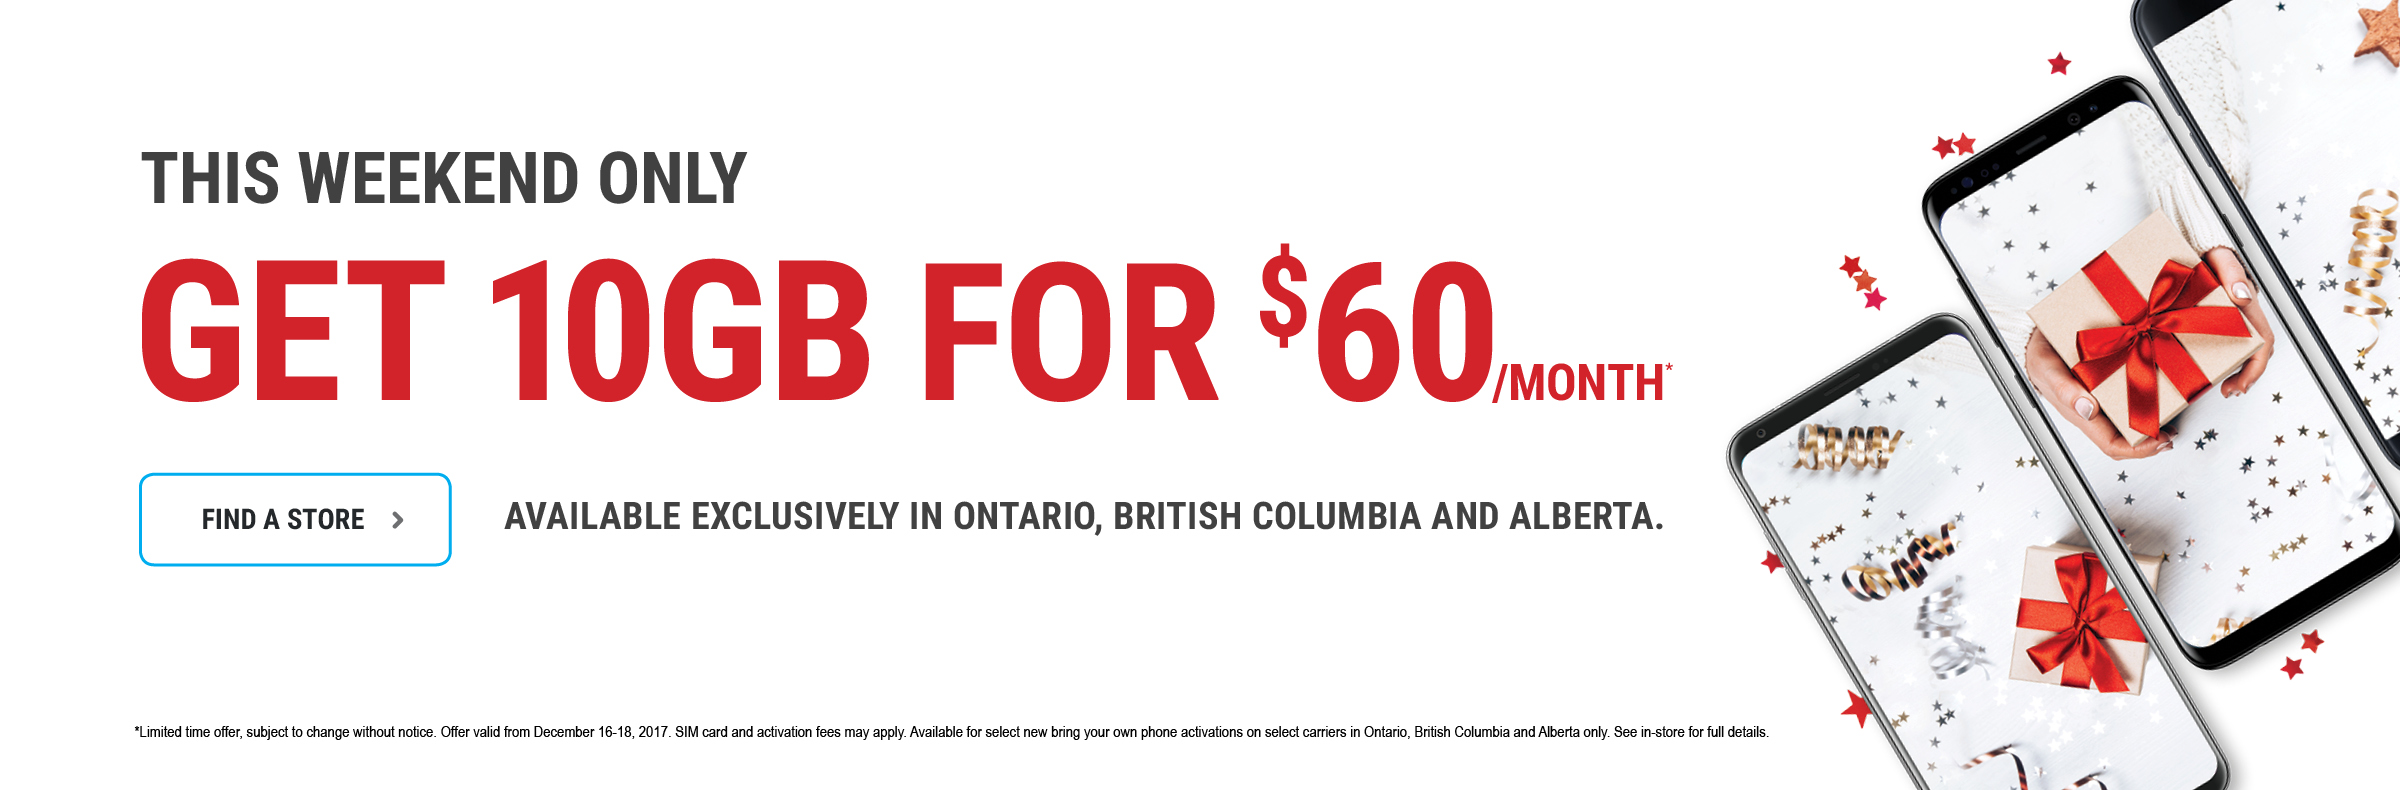 Get 10GB for $60 per month